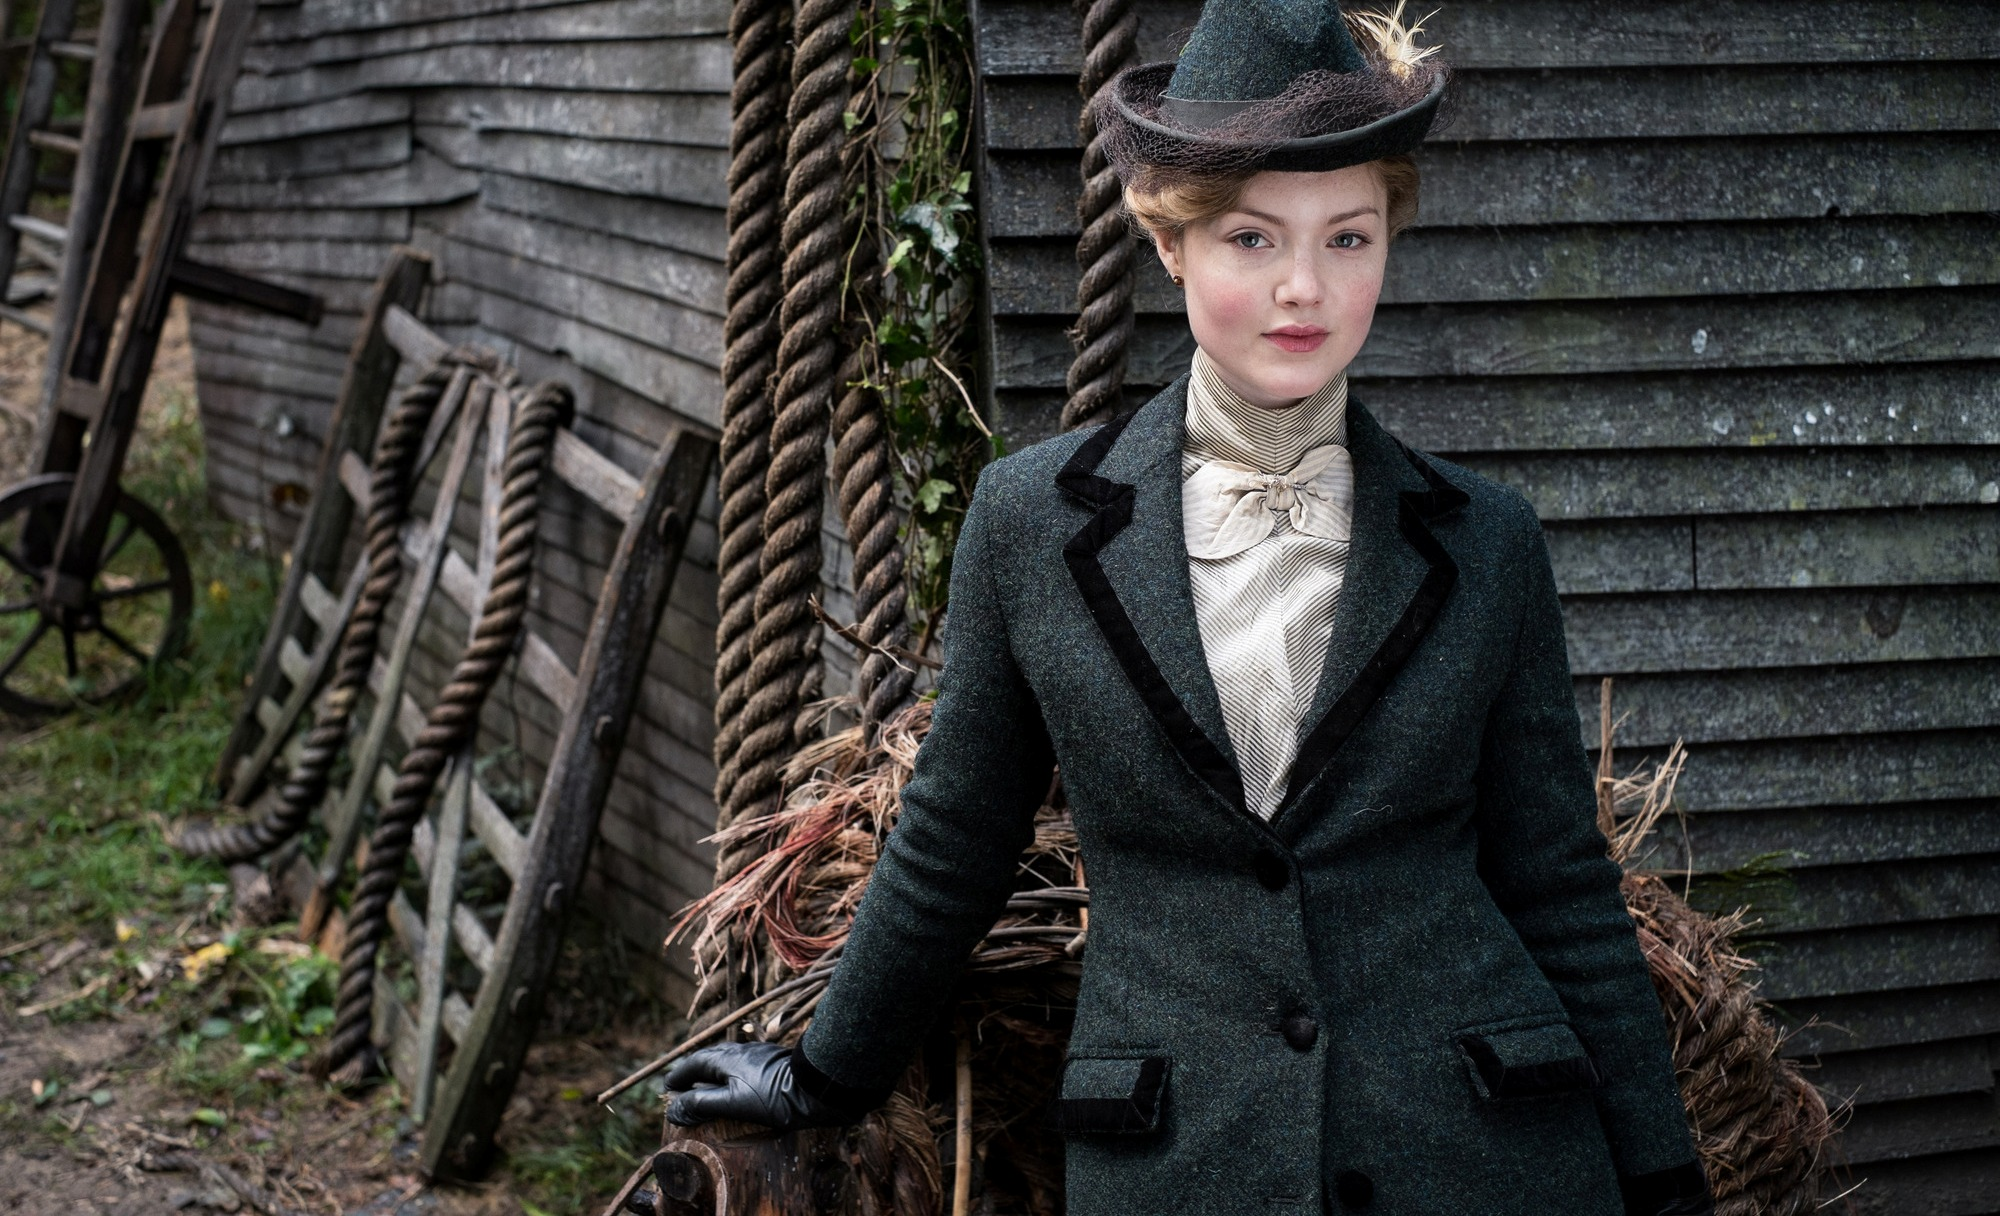 WARNING: Embargoed for publication until 29/08/2015 - Programme Name: Lady Chatterley's Lover - TX: 06/09/2015 - Episode: LCL - Unit Stills (No. n/a) - Picture Shows: Constance Chatterley (HOLLIDAY GRAINGER) - (C) HARTSWOOD FILMS - Photographer: ROBERT VIGLASKY